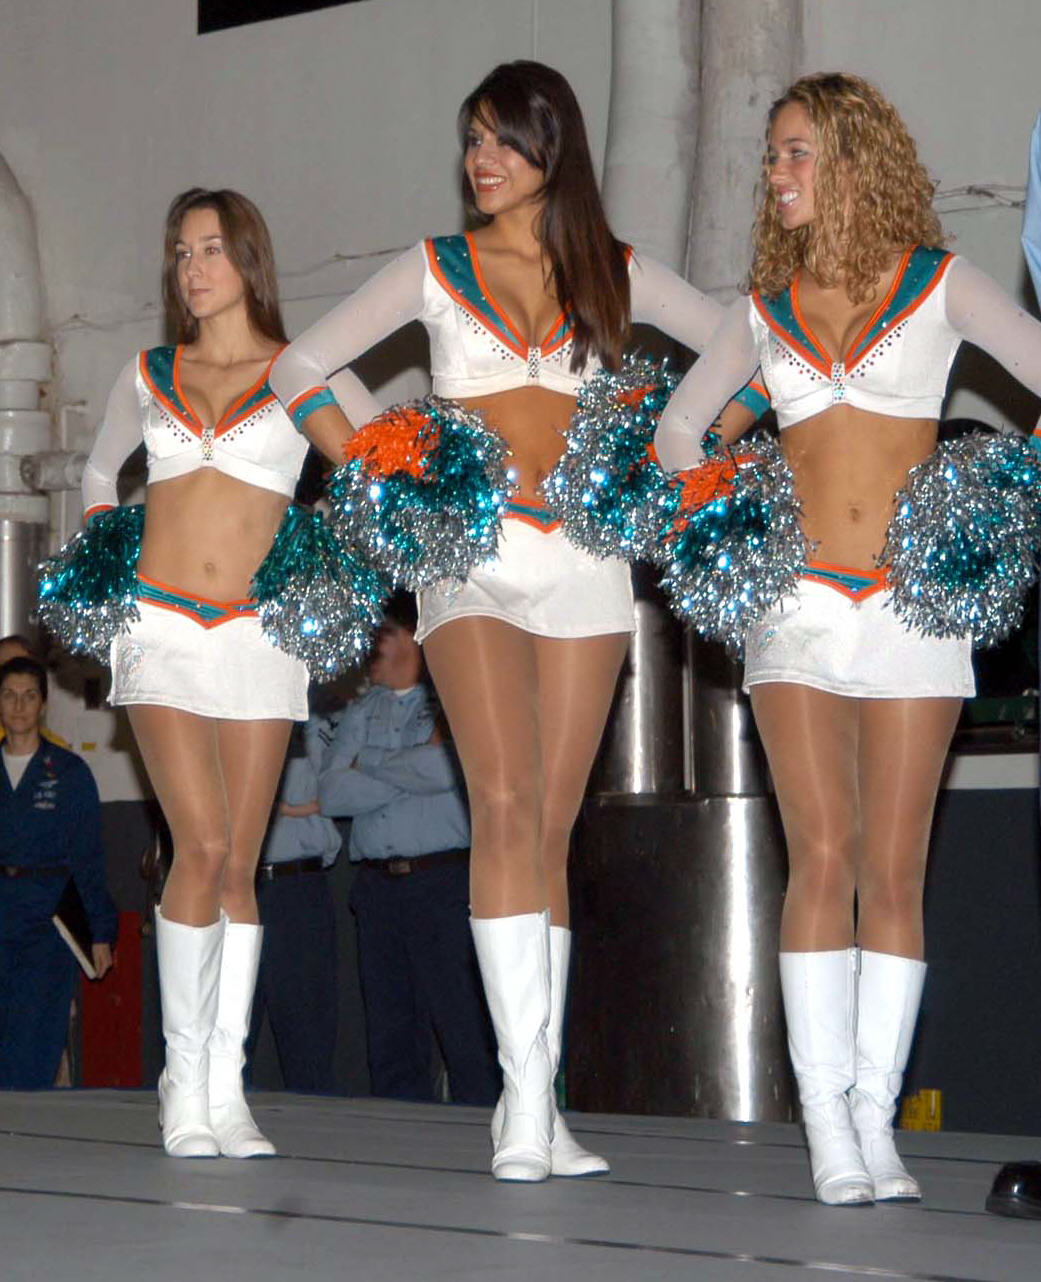 3 Miami Dolphins Cheerleaders In Beautiful Hosiery!